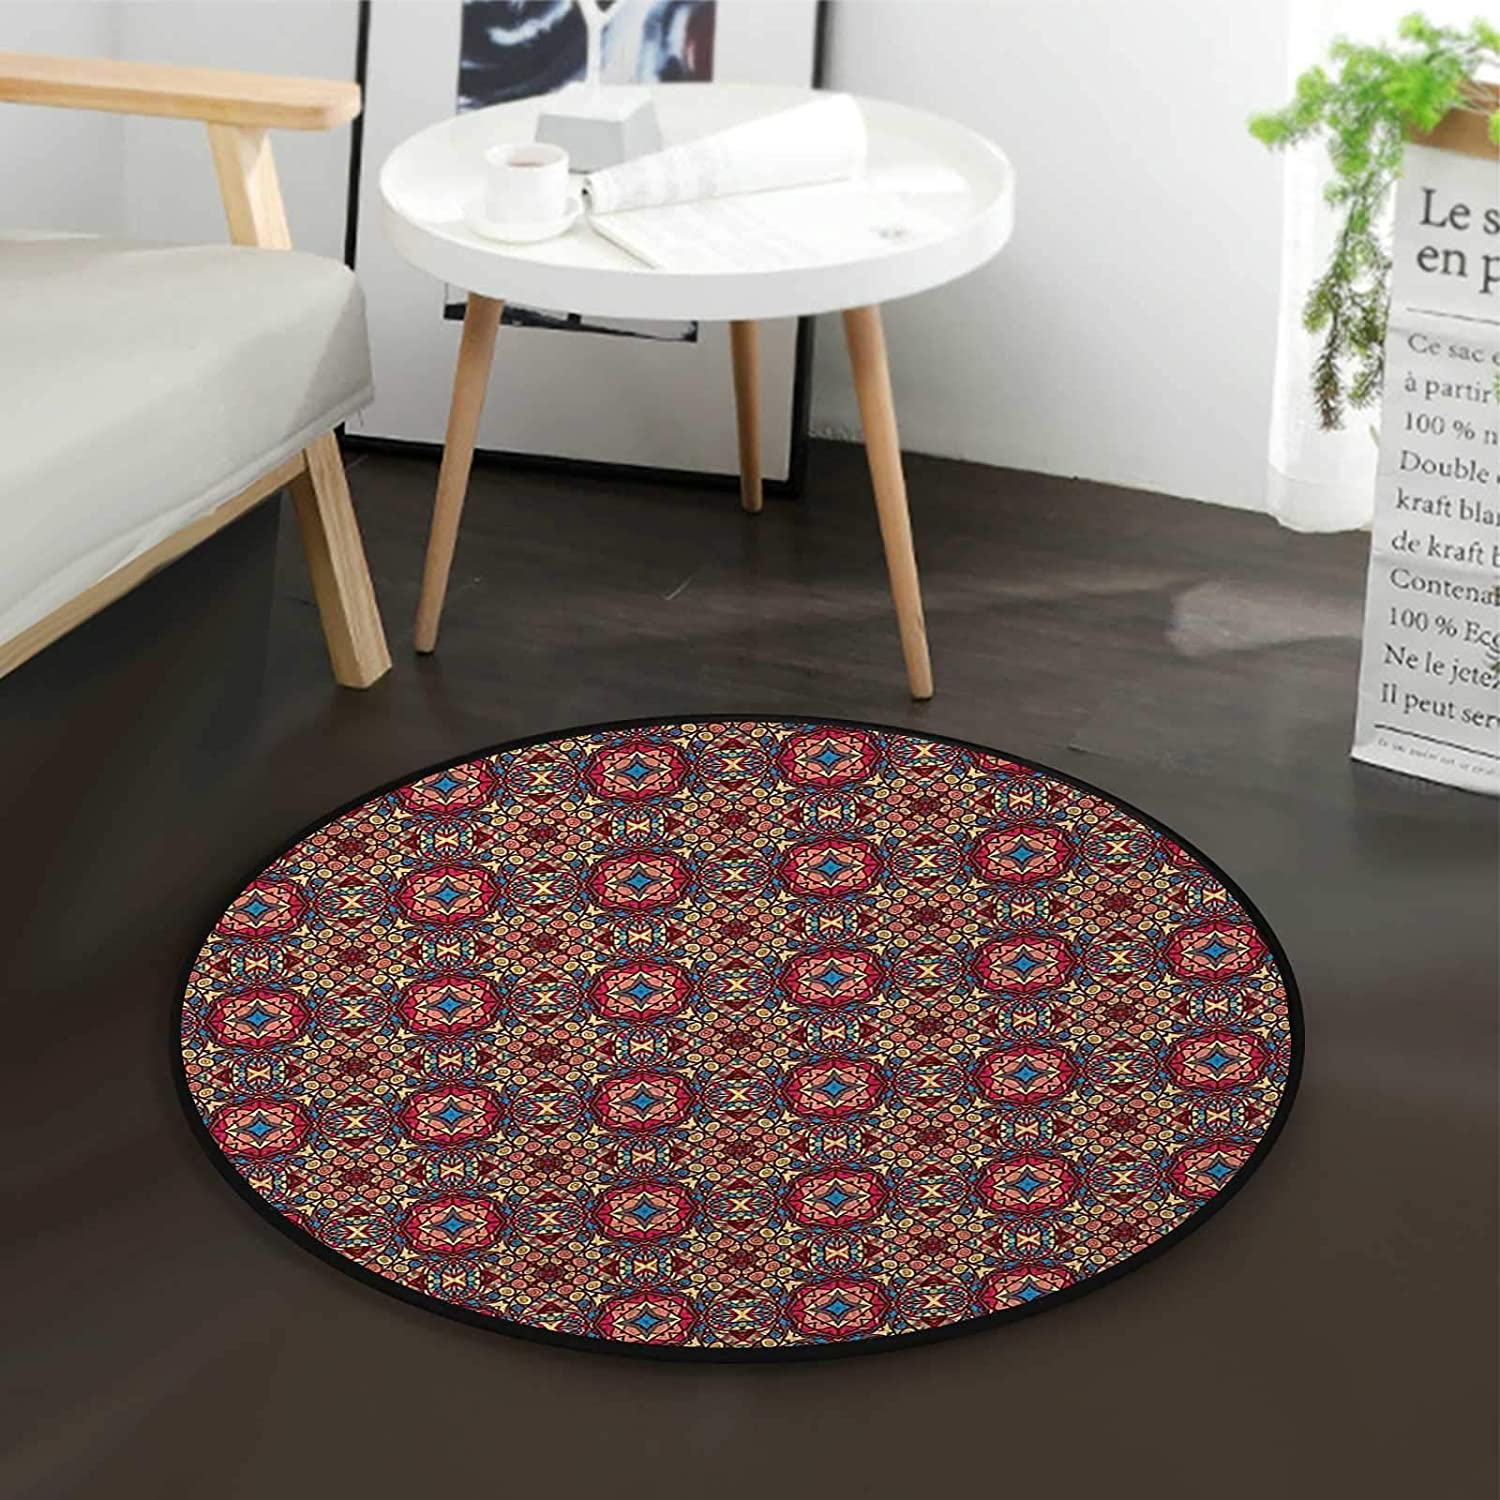 Colorful Image Coffee Table Rug Max Superlatite 89% OFF Round De Computer for Floor Mats